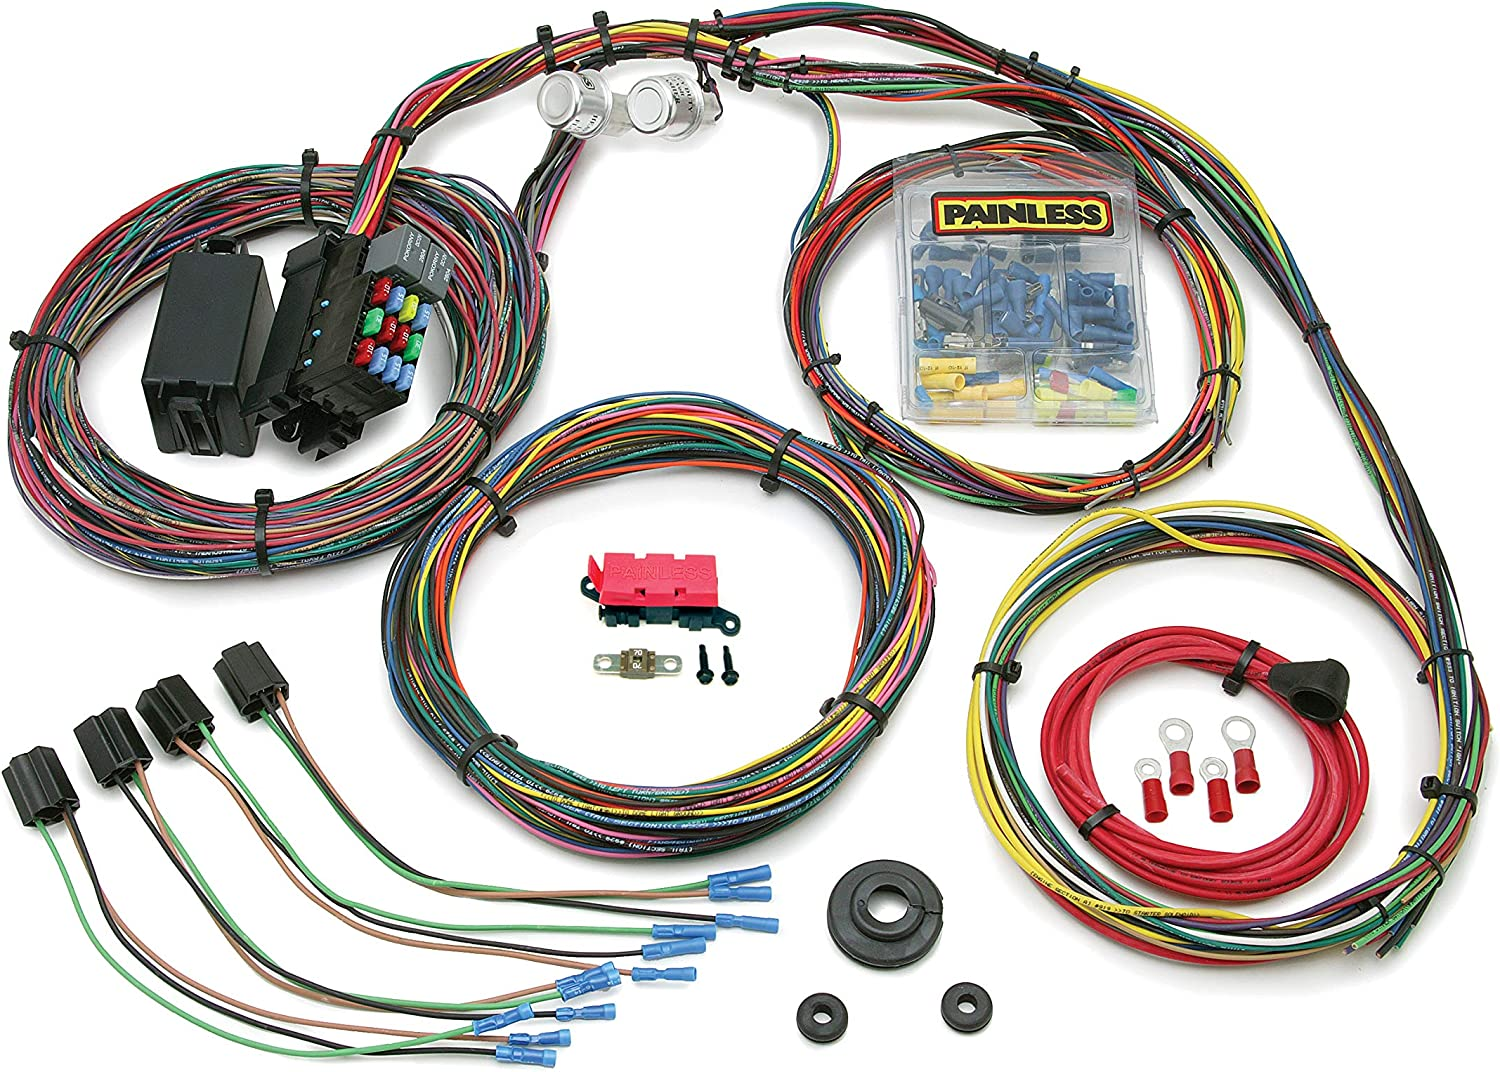 painless wiring harness and chassis amazon com painless 10127 customizable mopar color coded chassis  painless 10127 customizable mopar